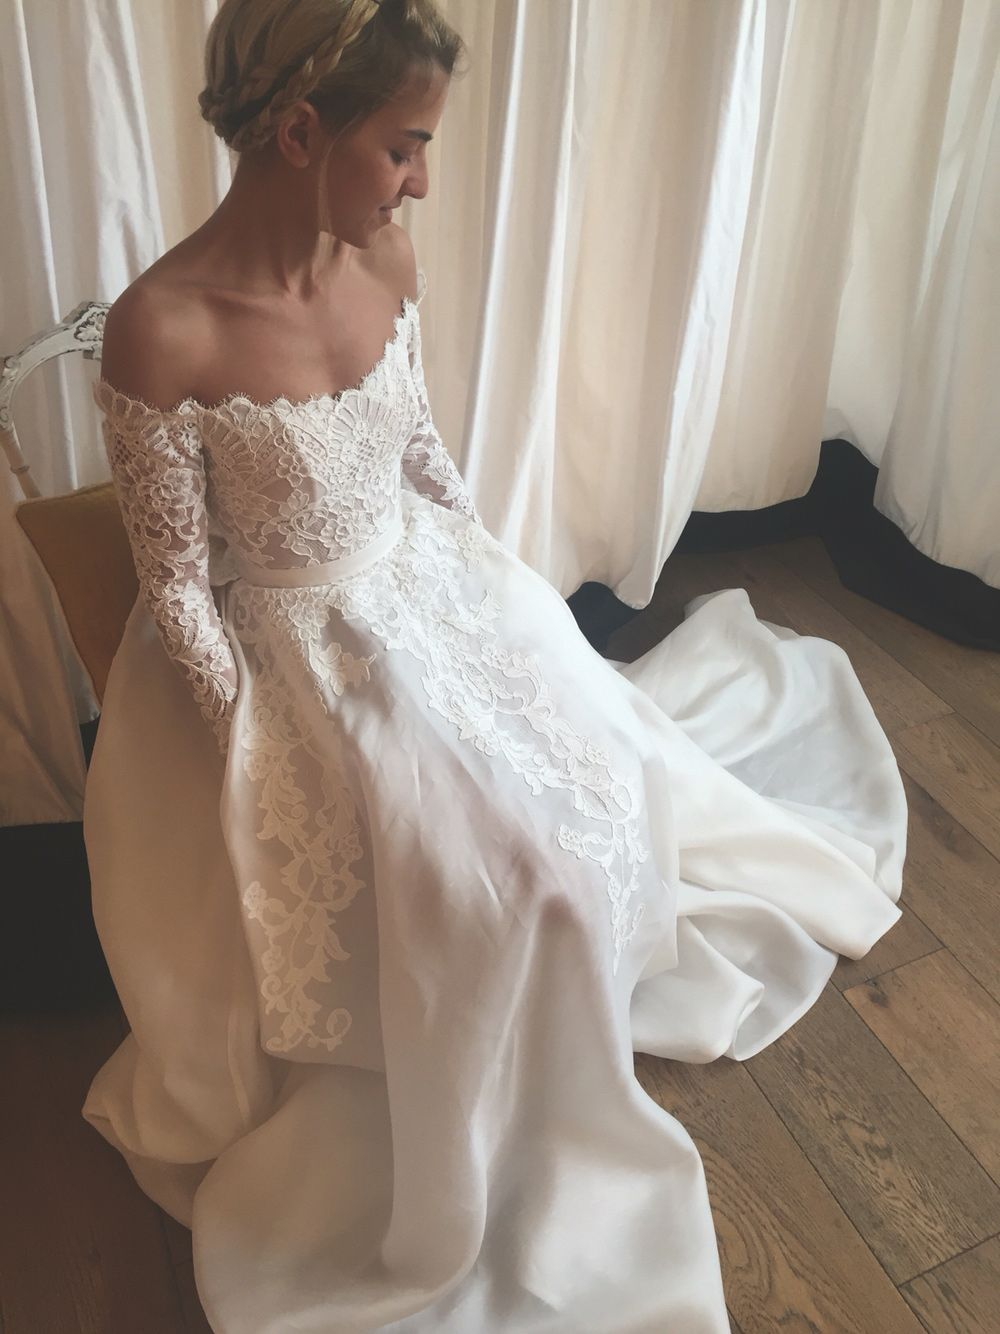 Shoulder one Ivory wedding dresses pictures forecasting to wear in on every day in 2019